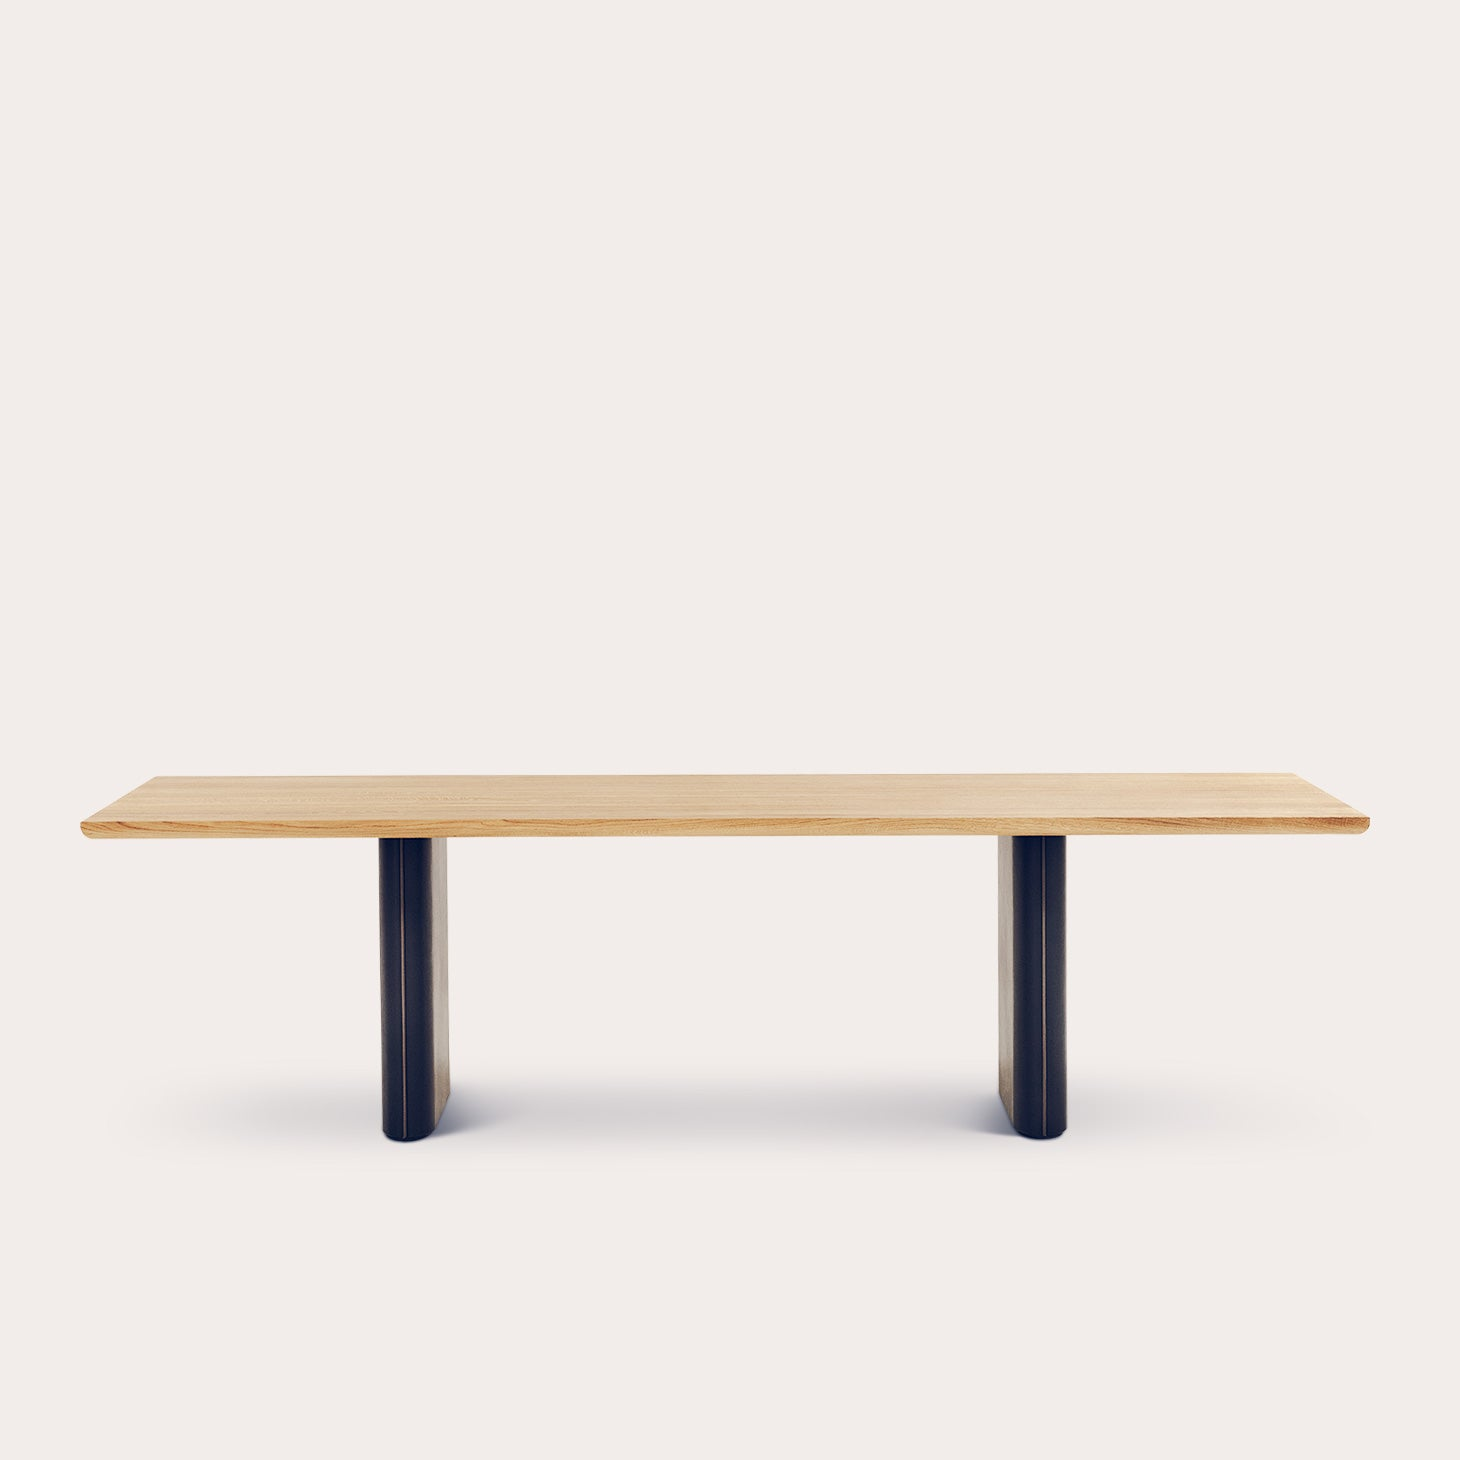 Merwyn Table Tables Sebastian Herkner Designer Furniture Sku: 758-230-10038